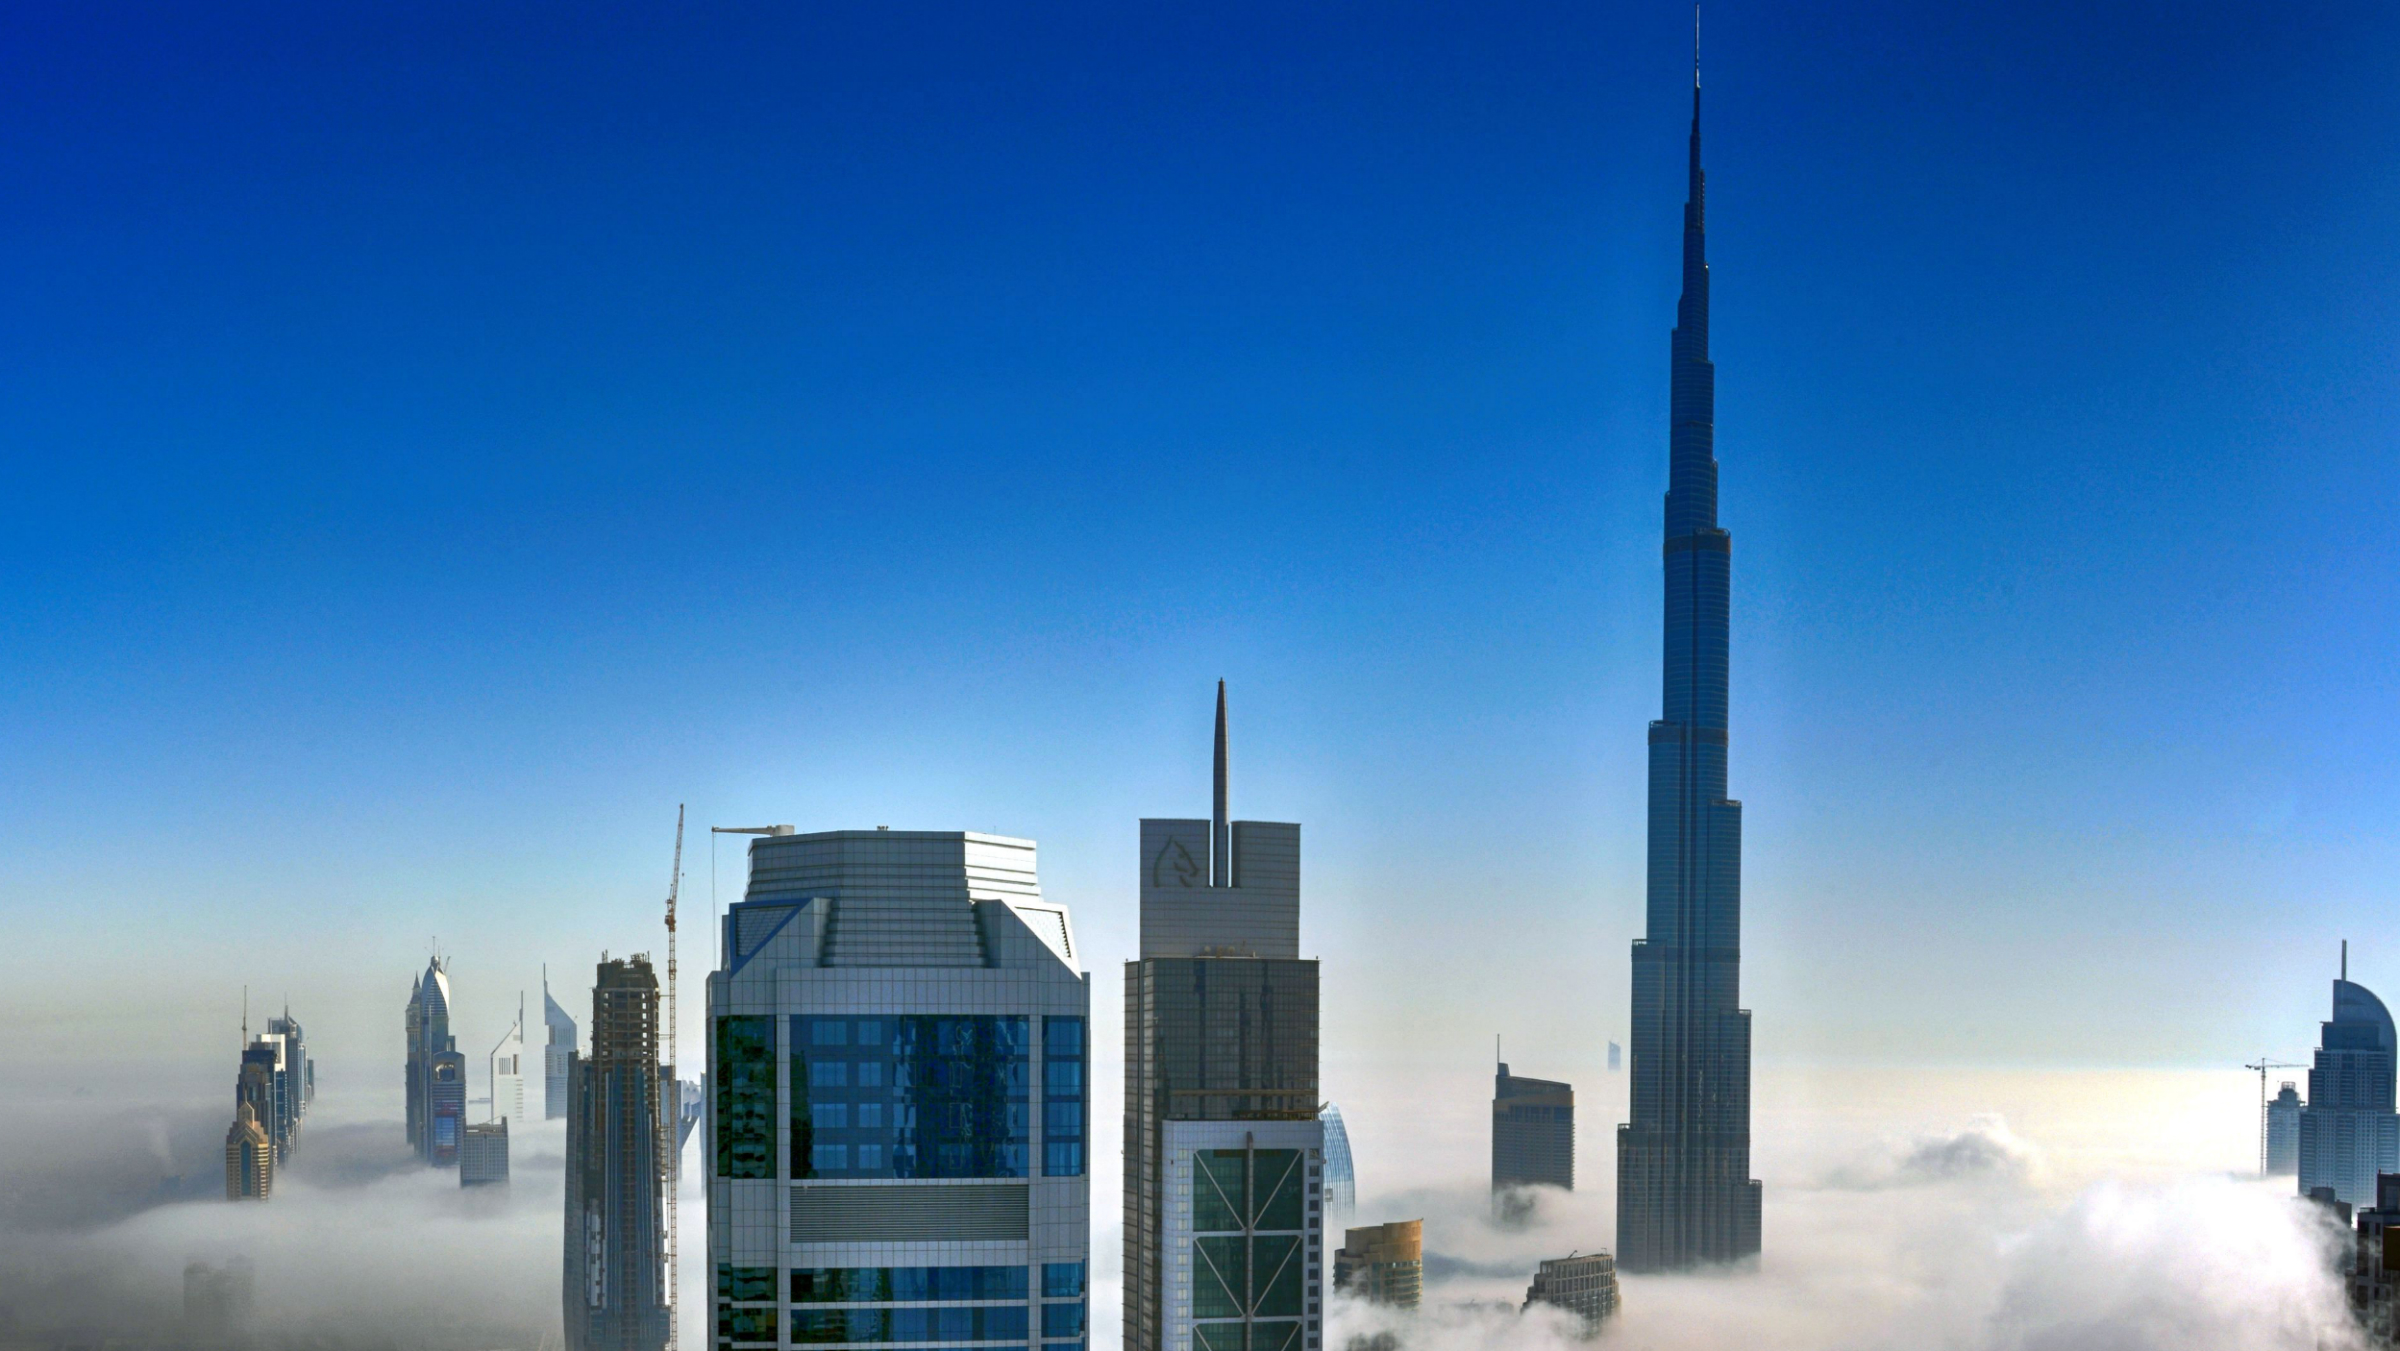 "Beautiful Blanket Of Fog Covers Dubai Residents in these high-rise blocks really do have their heads in the clouds - as the top of their buildings can just be seen poking out above a thick fog. Photographer Shiva Menon snapped the Dubai skyline from above the fog in his apartment on the 52nd floor of the MBK Tower. But the bed of fog was so dense it was impossible to see the horizon or even ground below. Instead, the tops of the buildings in the downtown Business Bay area - including the luxury Burj Al Arab hotel - appear to rise eerily from the fog. Many of the buildings are still under construction. Shiva, 37, from Dubai, took the photographs at around 7.30am before the early morning mist had a chance to clear. He said: ""The sea of mist was caused by a natural phenomena. ""Every year around this time the temperature begins to drop and humidity meets cooler air, forming the 'rolling fog'. ""As the sun rises it burns away the mist to reveal the desert once again. ""The thick white fog develops overnight as a result of the disparity between high temperatures and humidity during the day and the drop of the mercury during the night."" The fog - which floats around 30 metres above the ground - is only this thick on a few days each year, usually between September and November. However, on other days it is still ""prominent"" enough to affect visibility and traffic in the Emirate state. Shiva added: ""I was able to capture the scene with its actual essence, serenity and uniqueness. ""It was totally surreal and felt like I was in a completely different galaxy. ""It was quiet mesmerizing and a very calmly experience. A very gorgeous scene."""